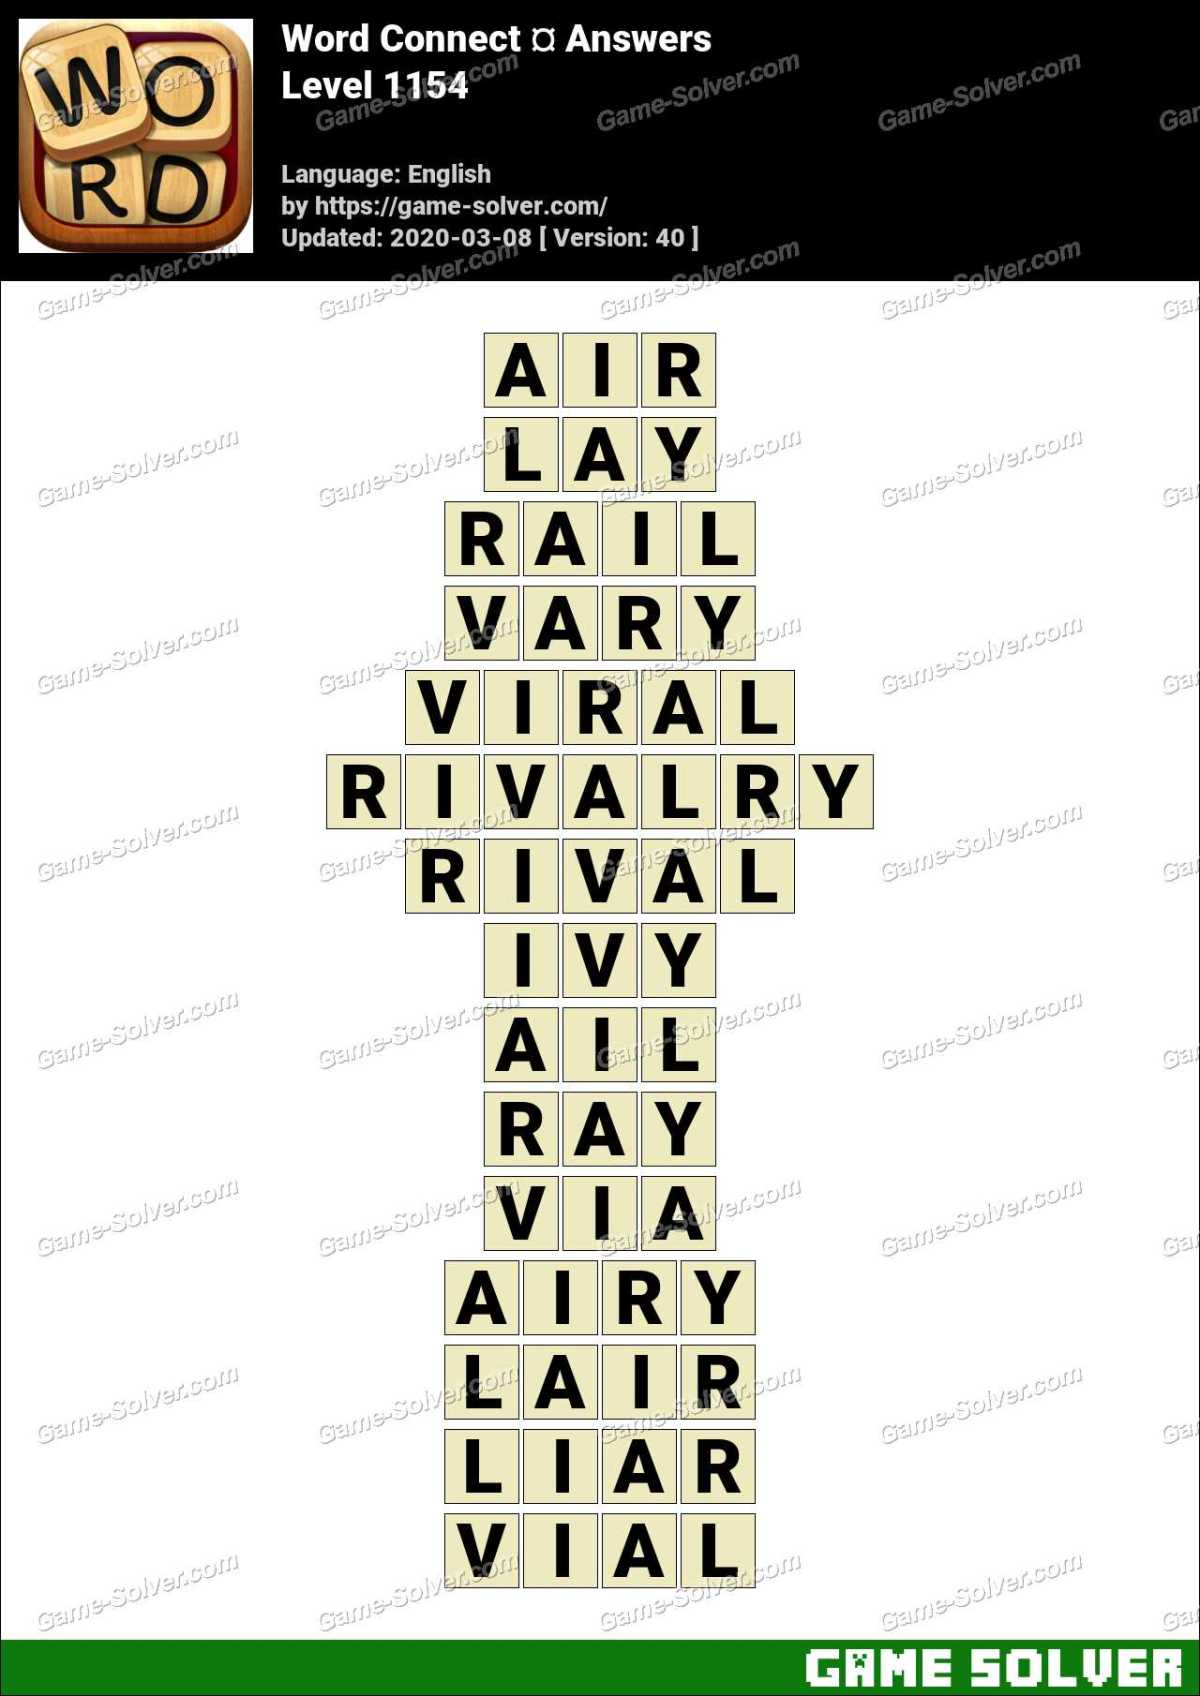 Word Connect Level 1154 Answers